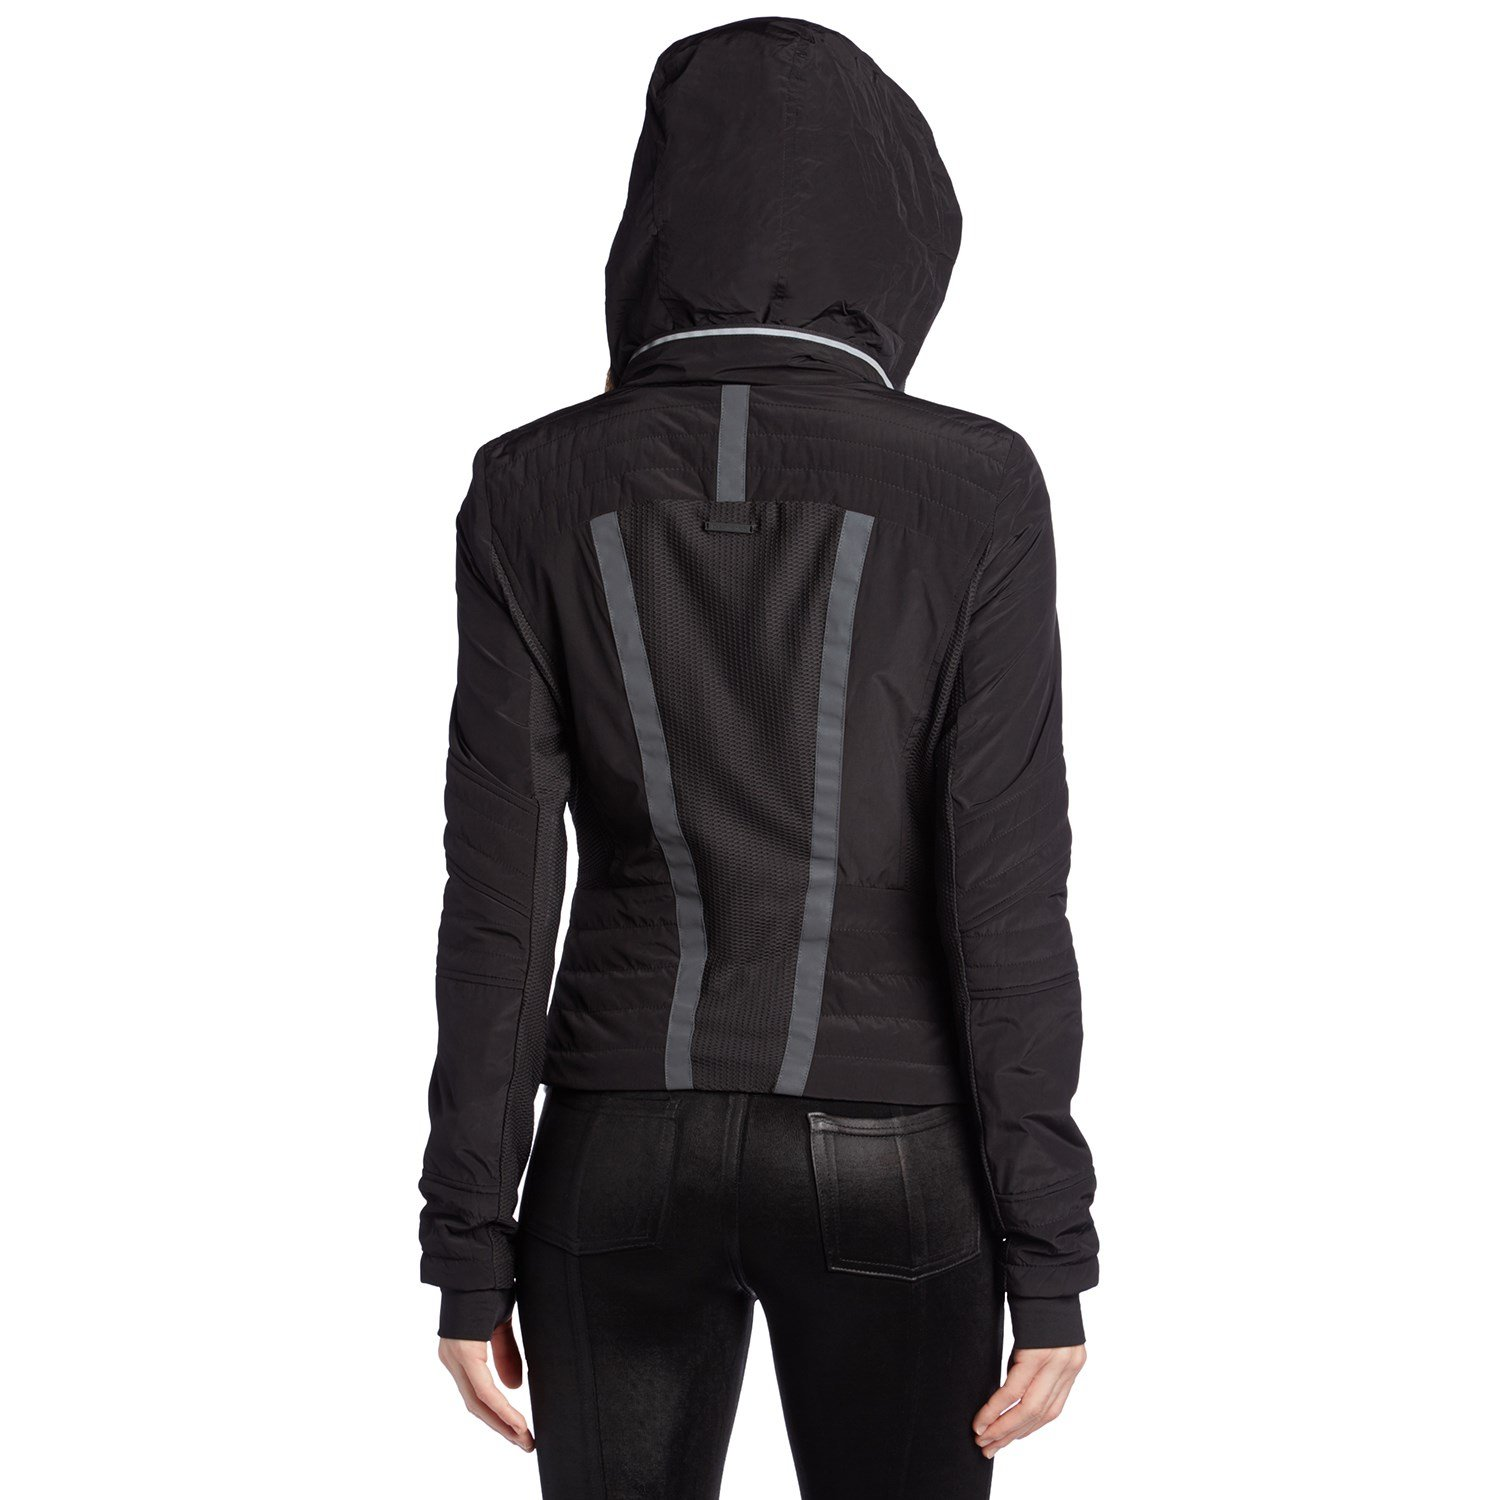 Blanc Noir Windbreaker Jacket - Women's | evo